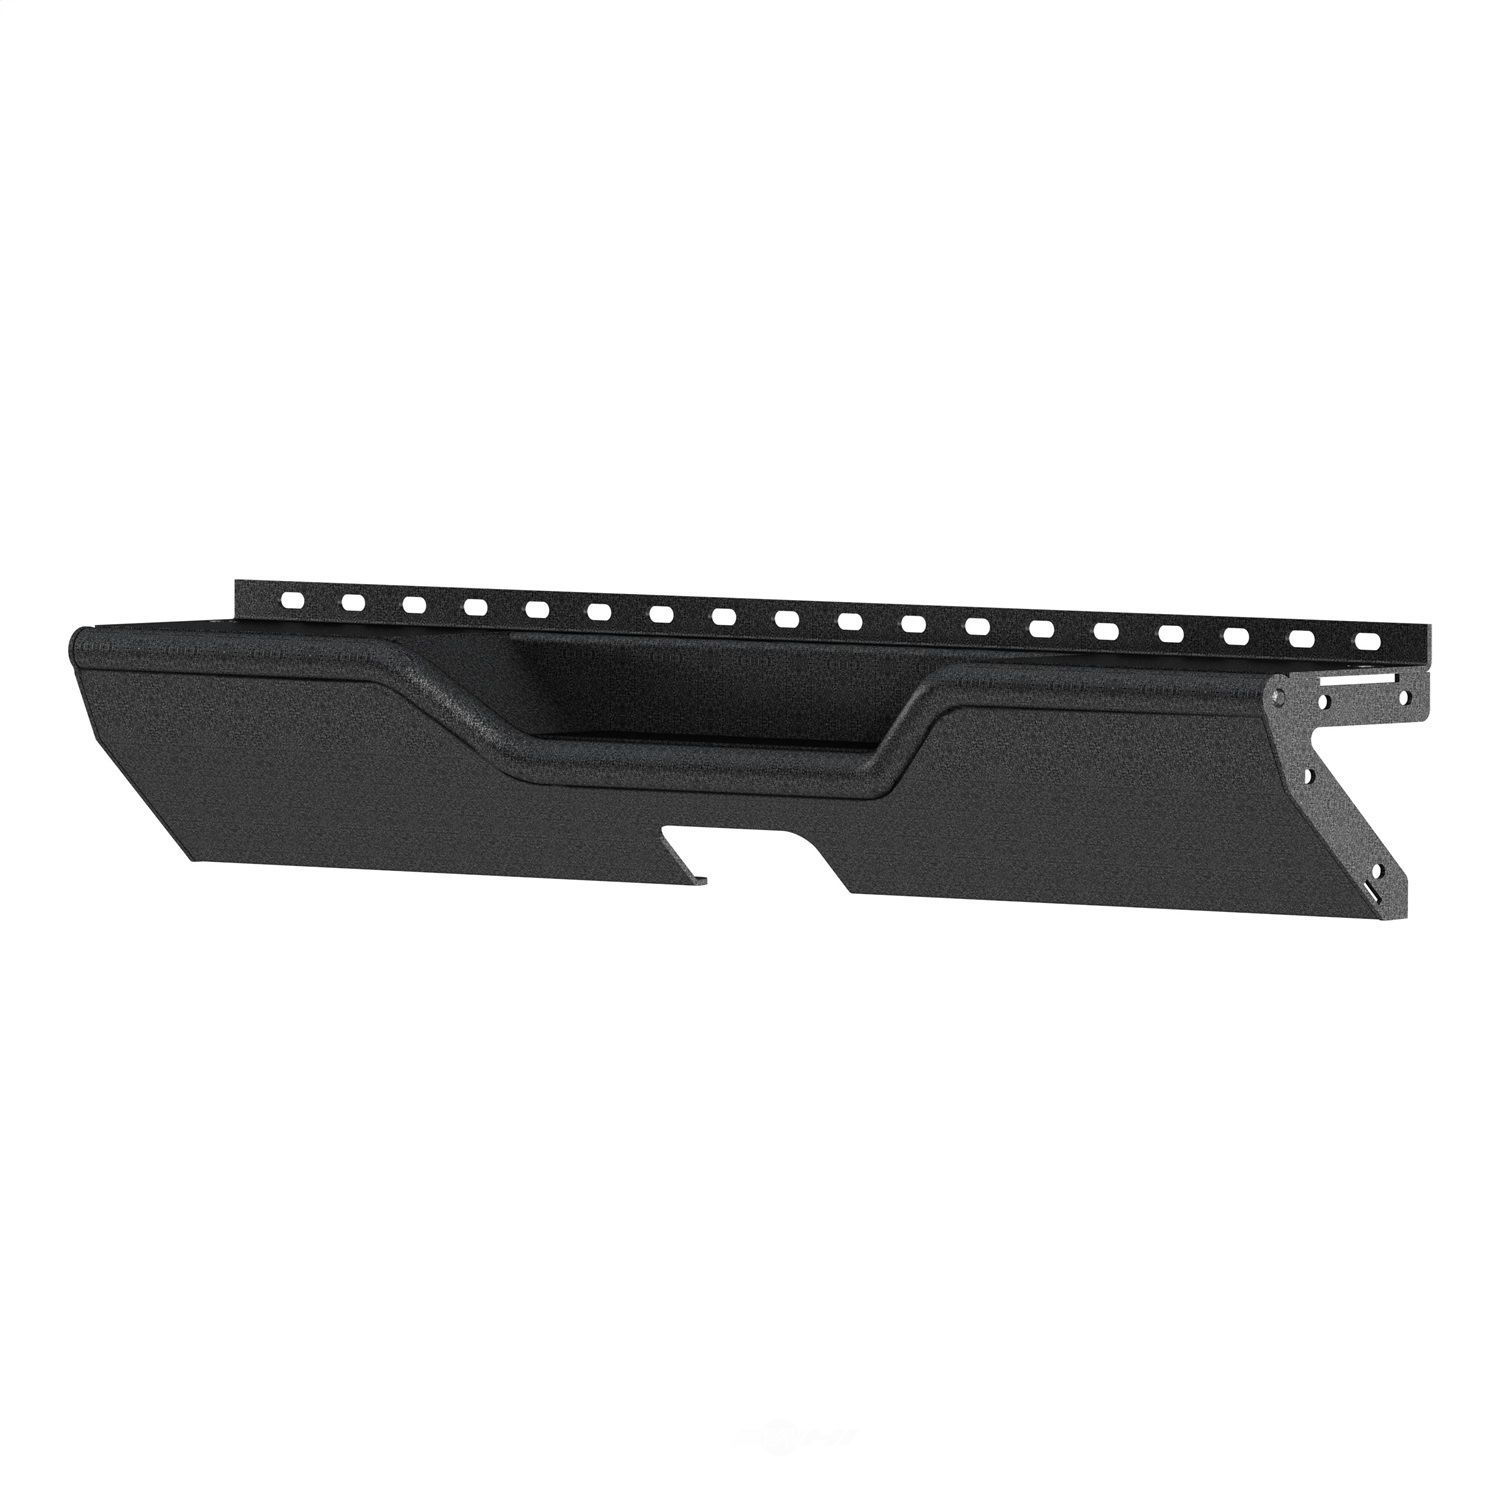 ARIES - Trailchaser Rear Bumper Center Section (Rear) - AR2 2081024